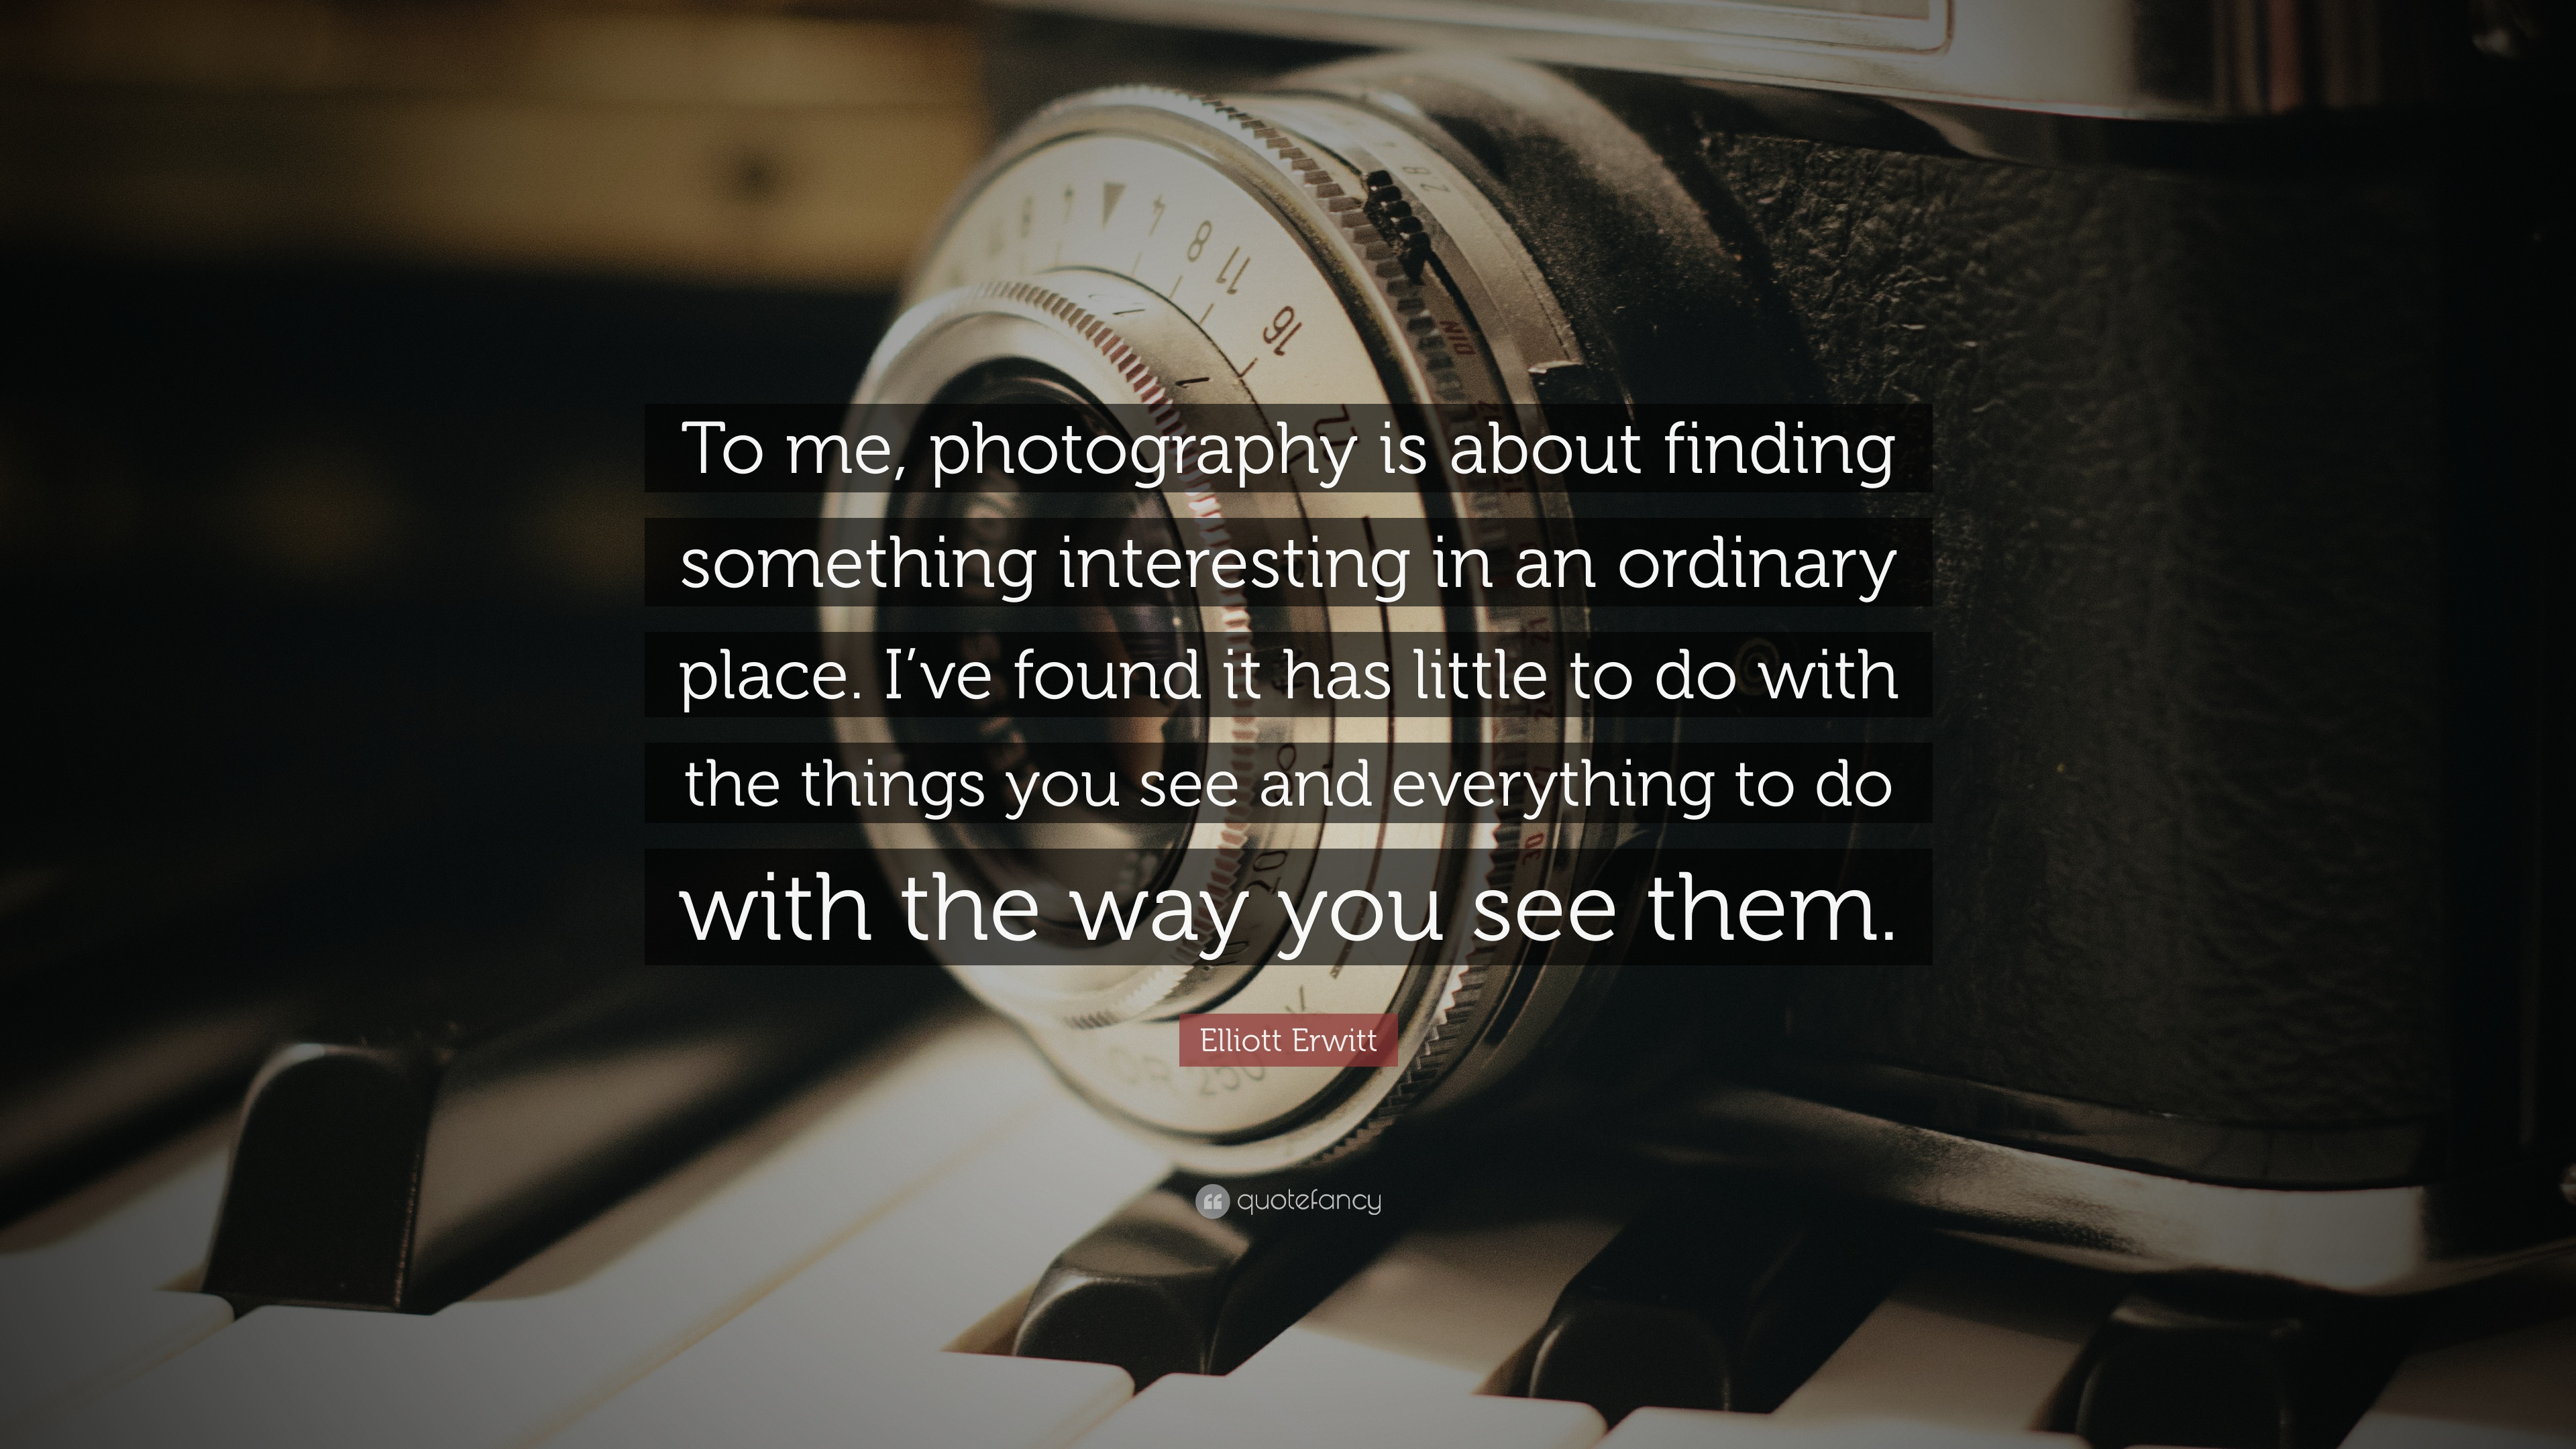 Photography Quotes To Me Is About Finding Something Interesting In An Ordinary